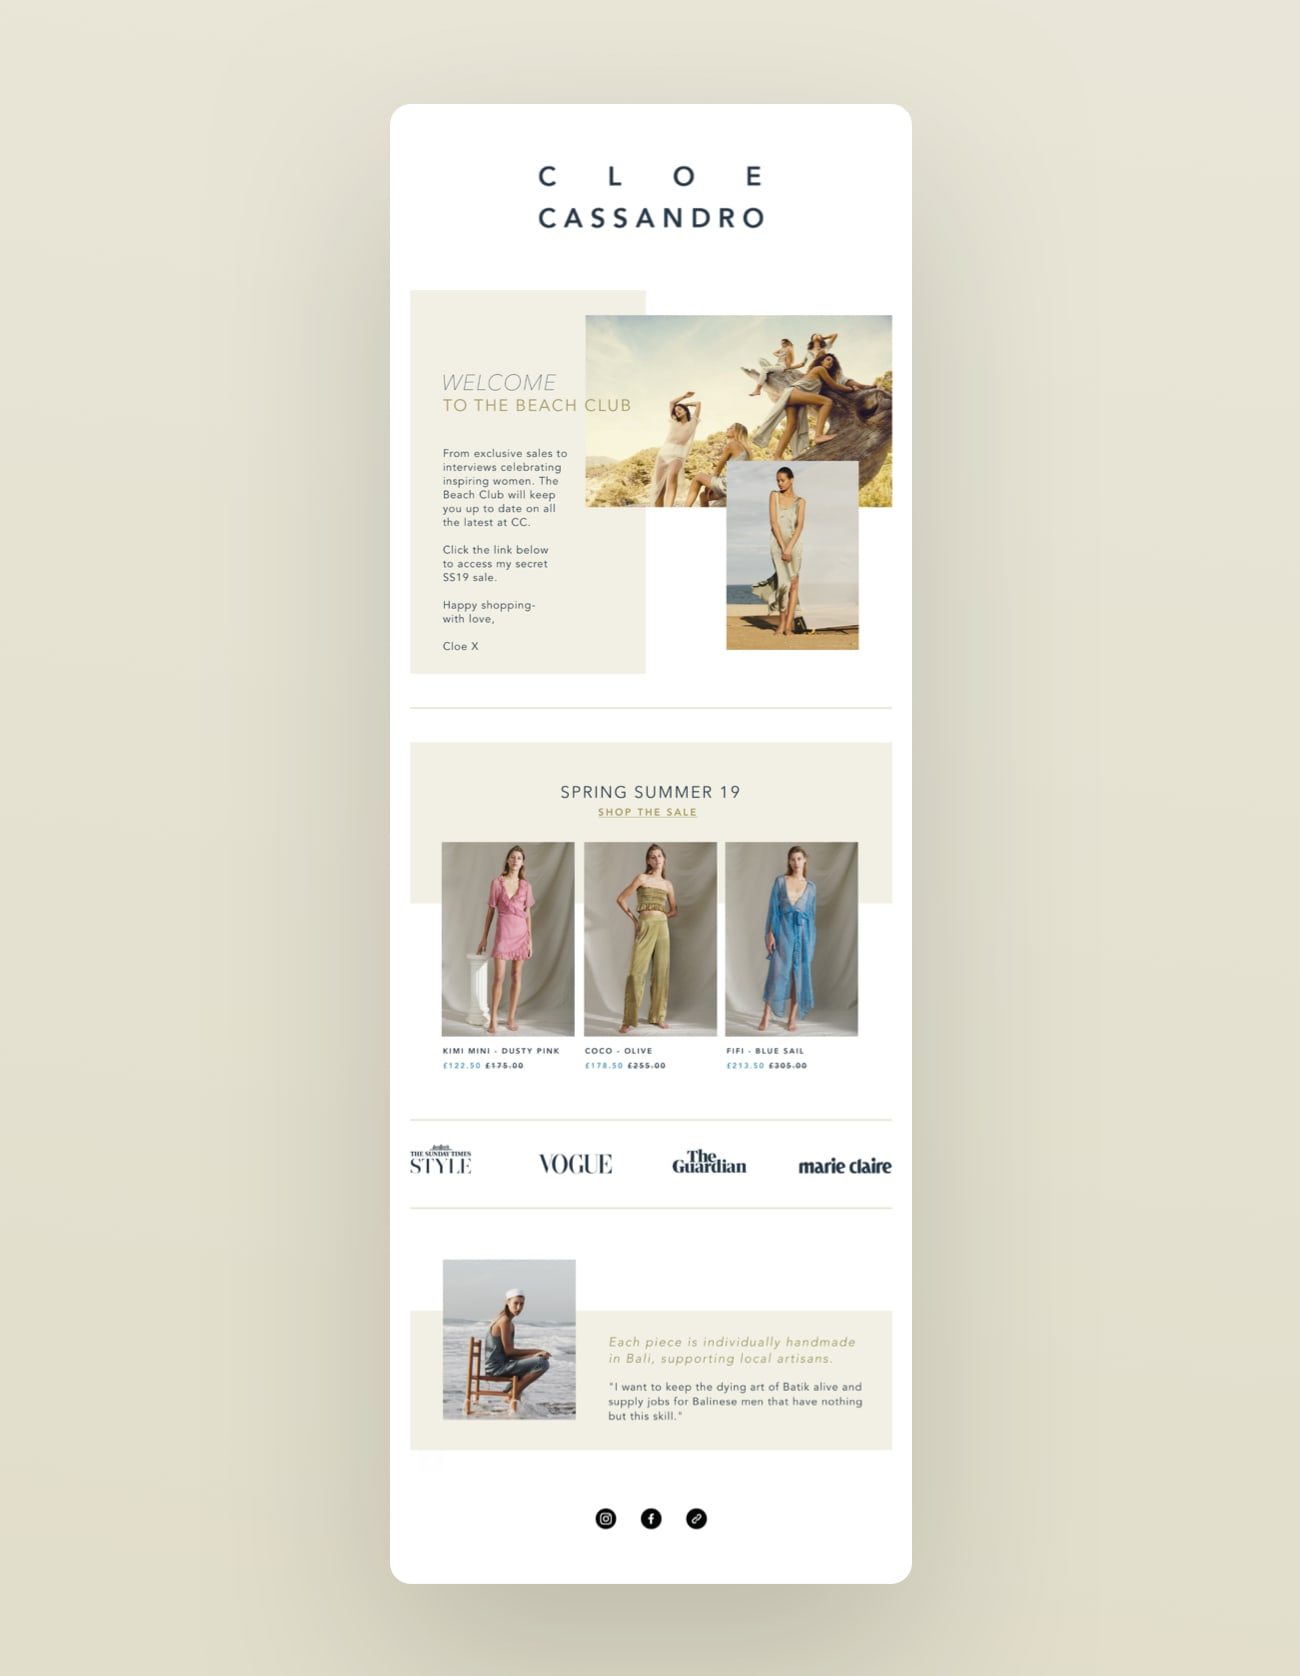 One of the refreshed Cloe CAssandro newsletter